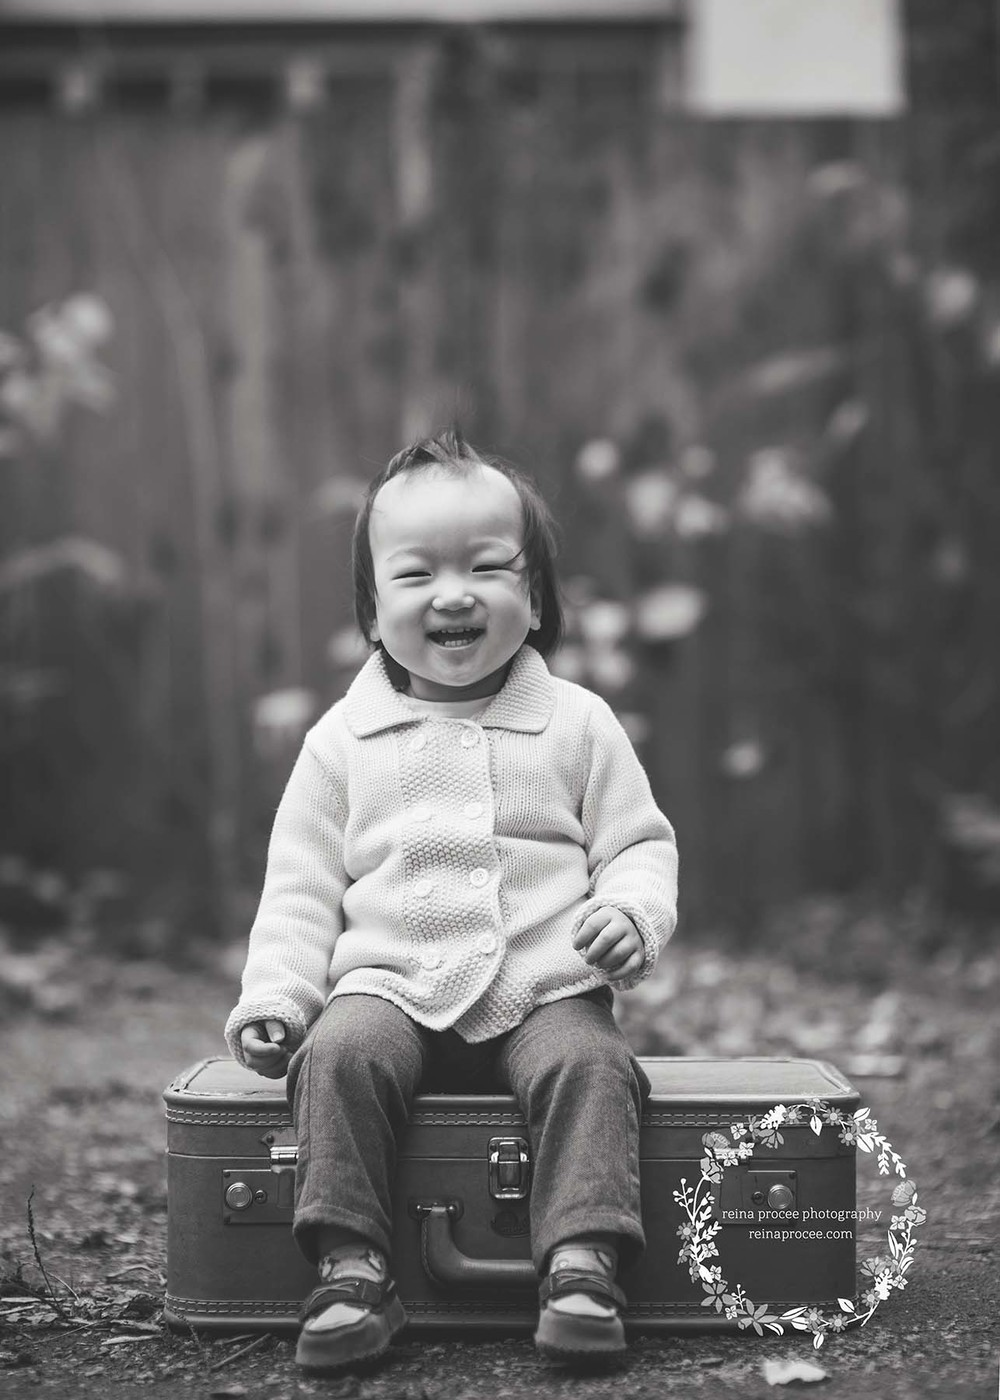 little boy sitting on suitcase laughing